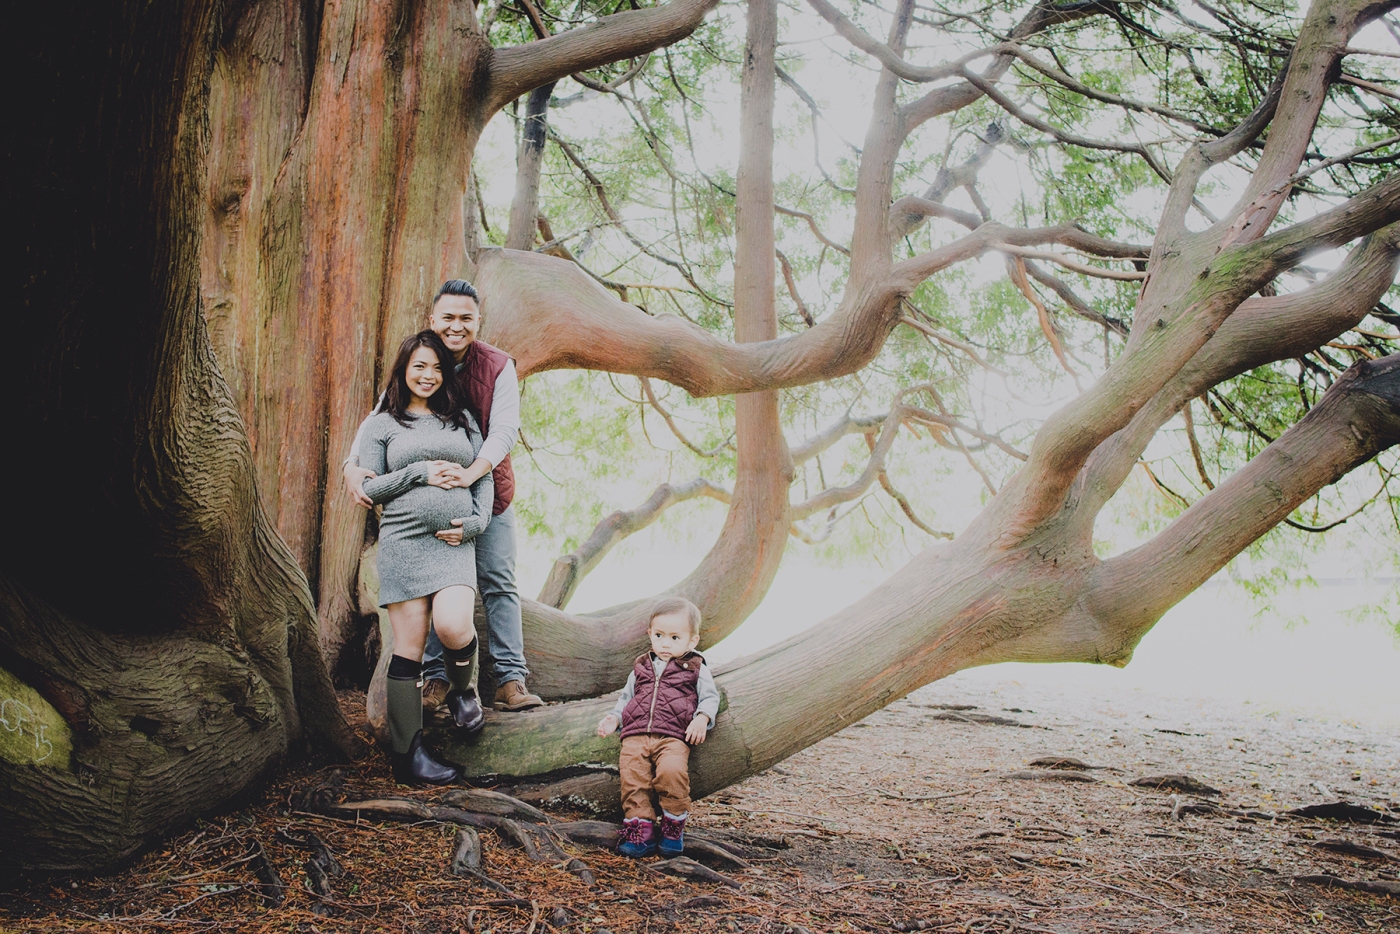 paula_p_maternity_the_royal_squirrel_seattle_family_photographer_2016_dsc_7959